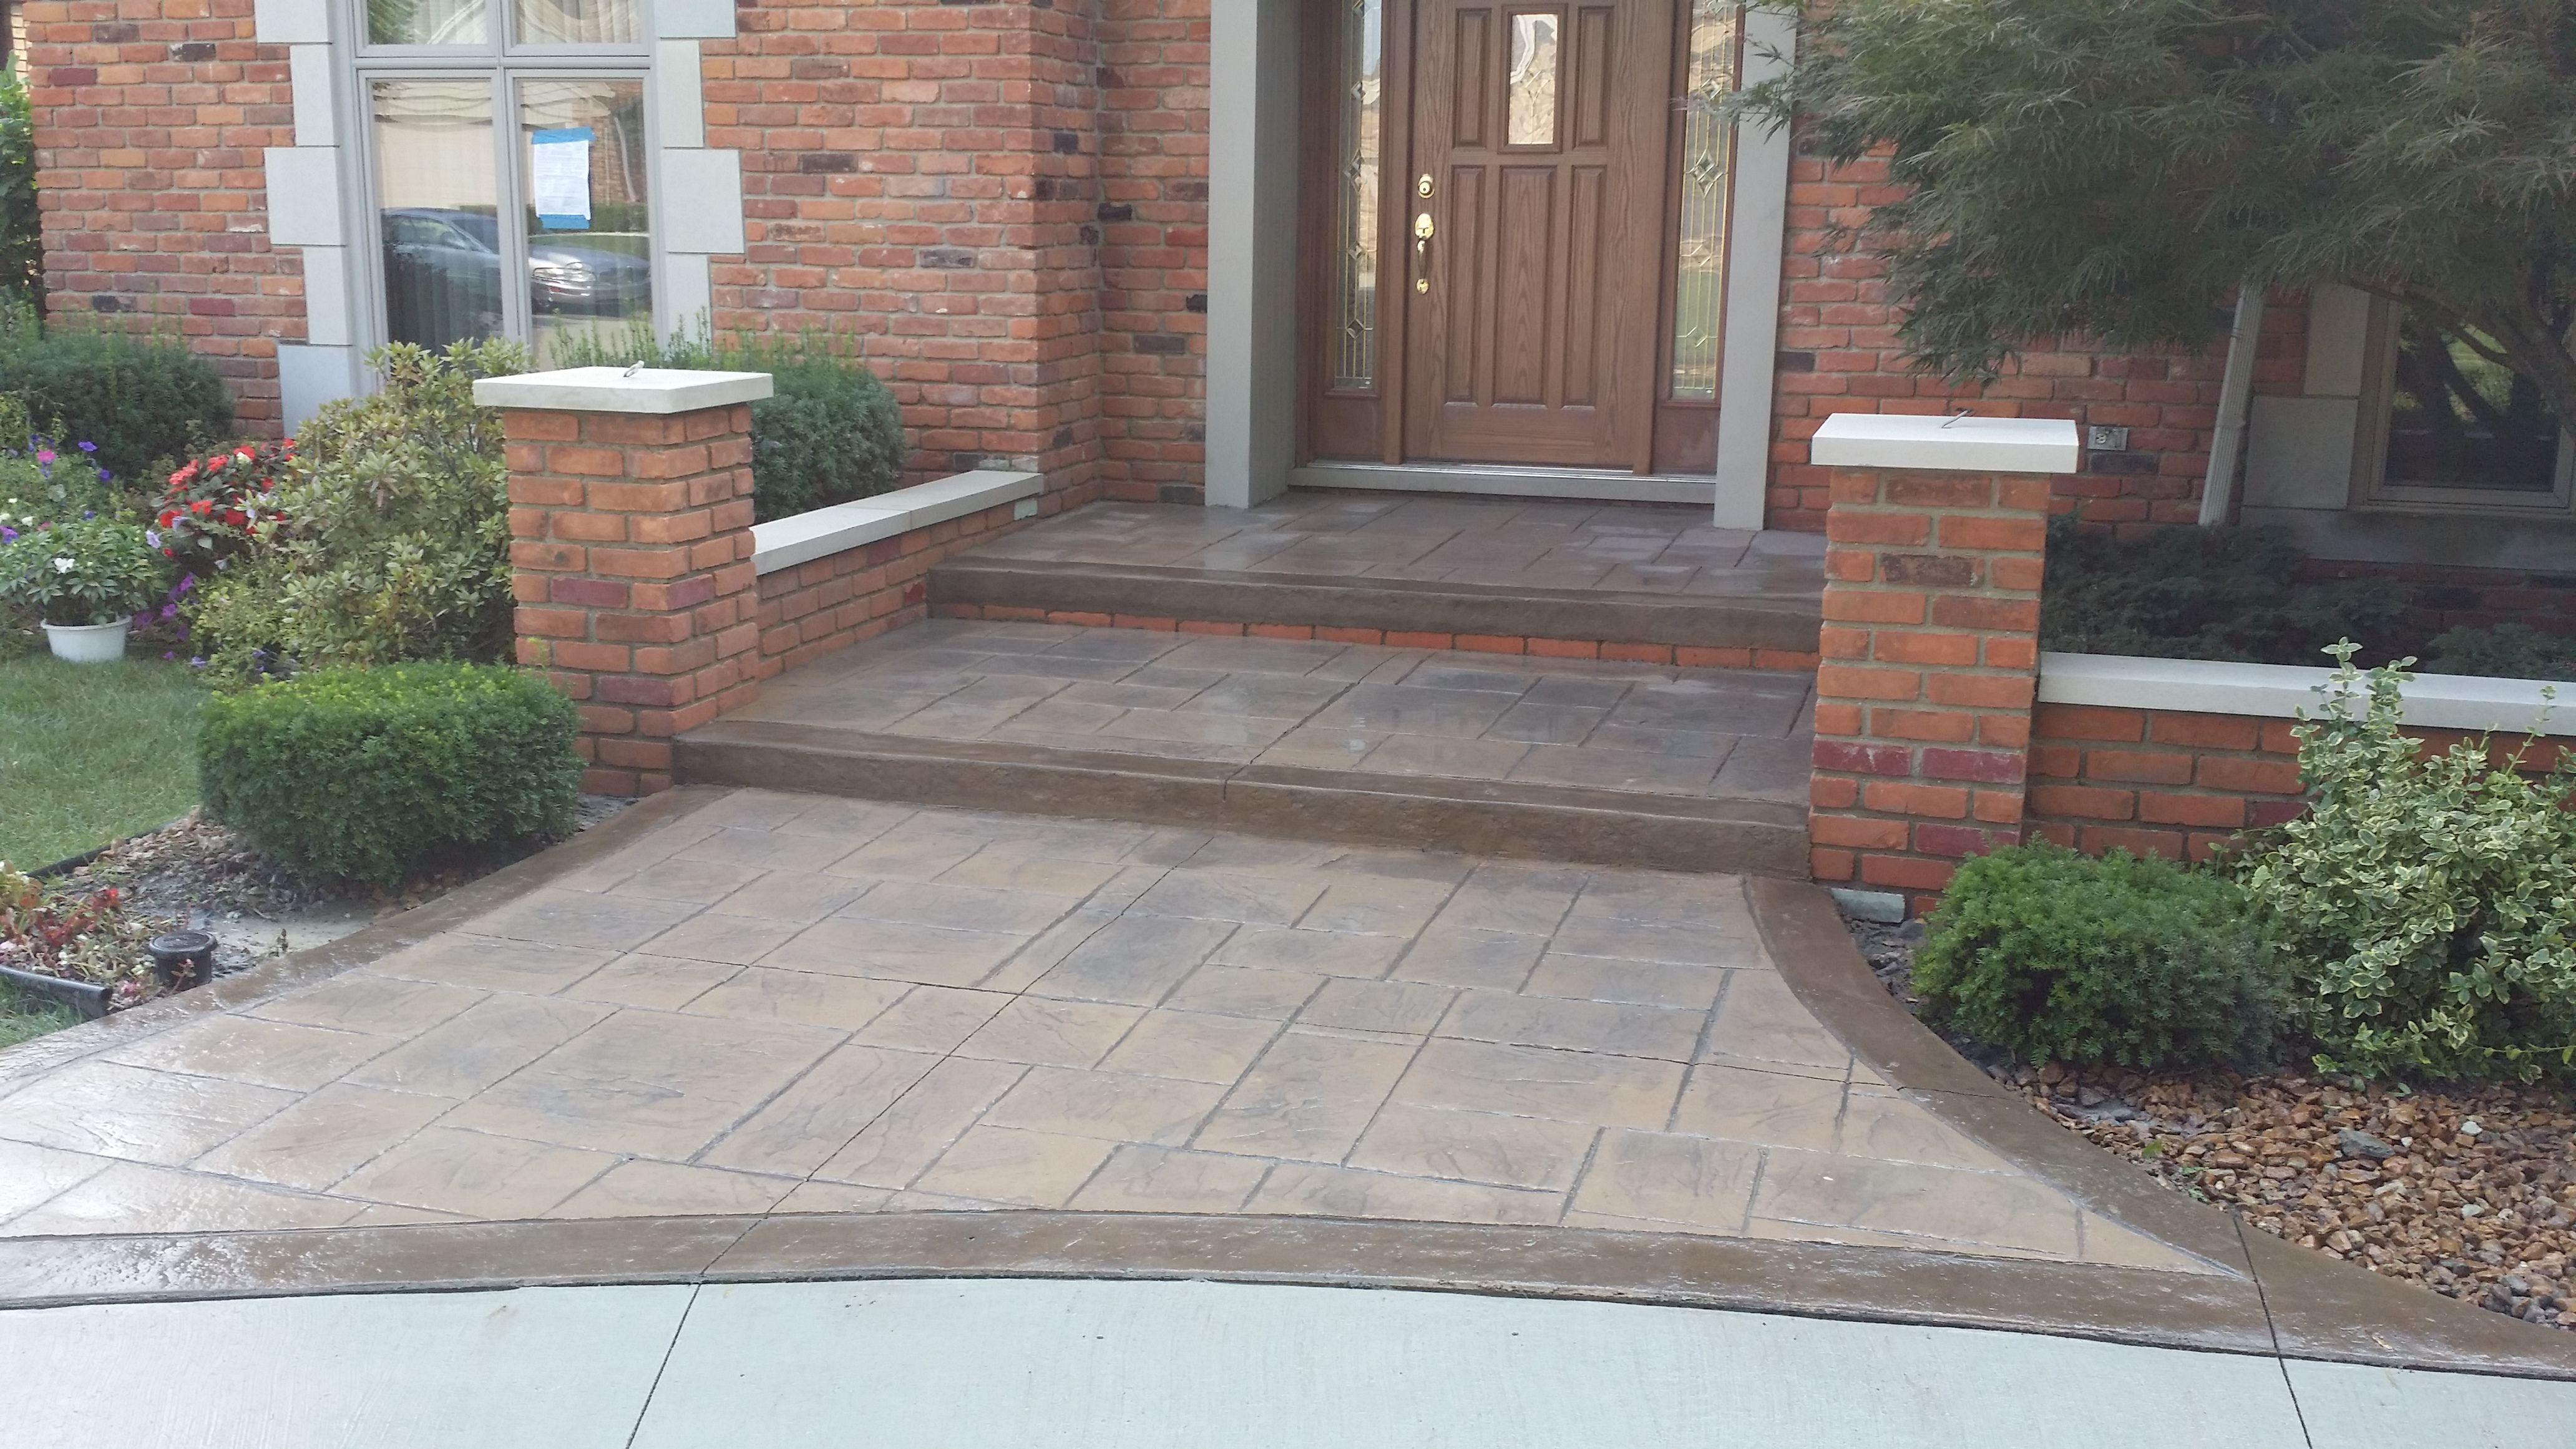 Brick Wall Build With Stamped Concrete Porch Cap And Sidewalk Cement Driveway Stamped Concrete Patio Stamped Concrete Concrete Porch